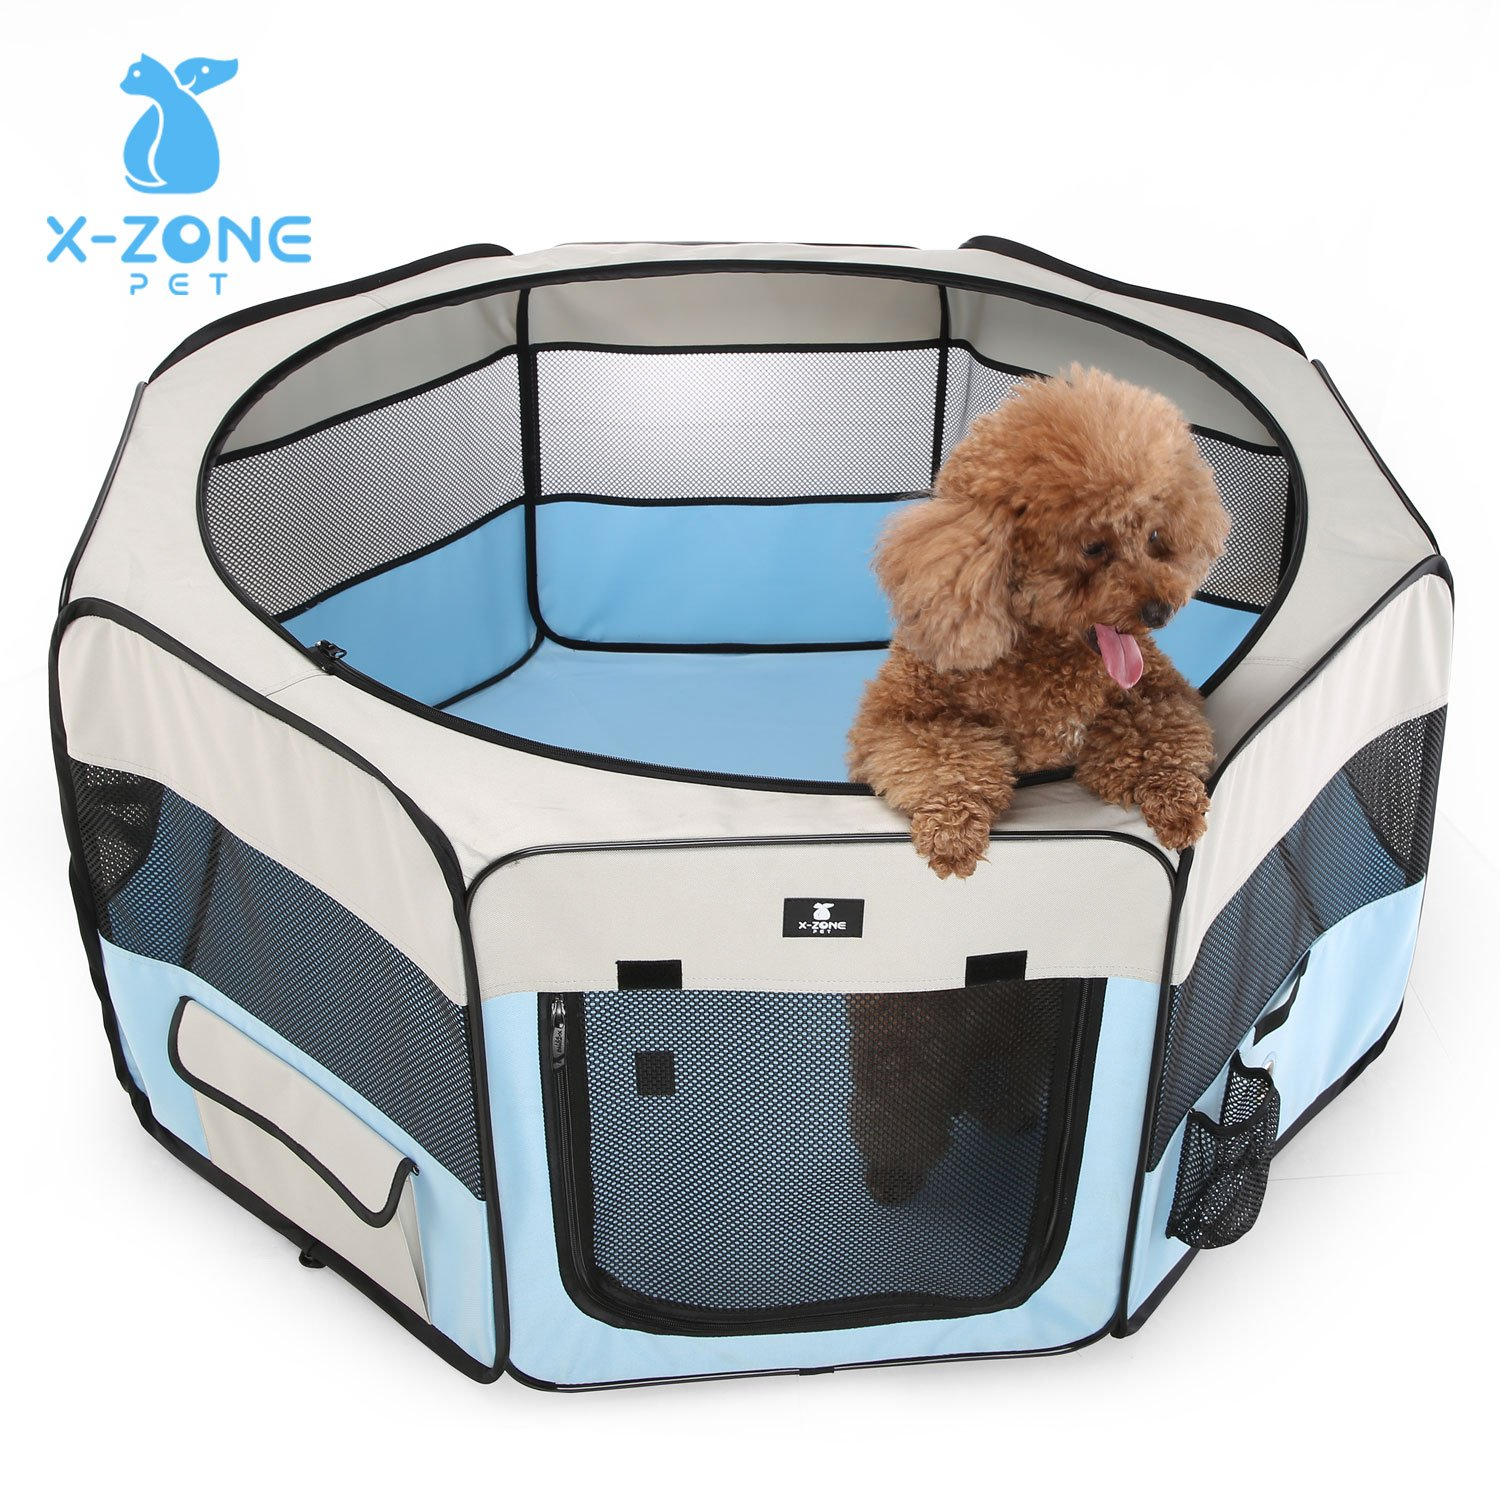 X-ZONE PET 45'' Portable Foldable Pet Dog Cat Playpen Crates Kennel/Premium 600D Oxford Cloth,Removable Zipper Top, Indoor and Outdoor Use (Blue)